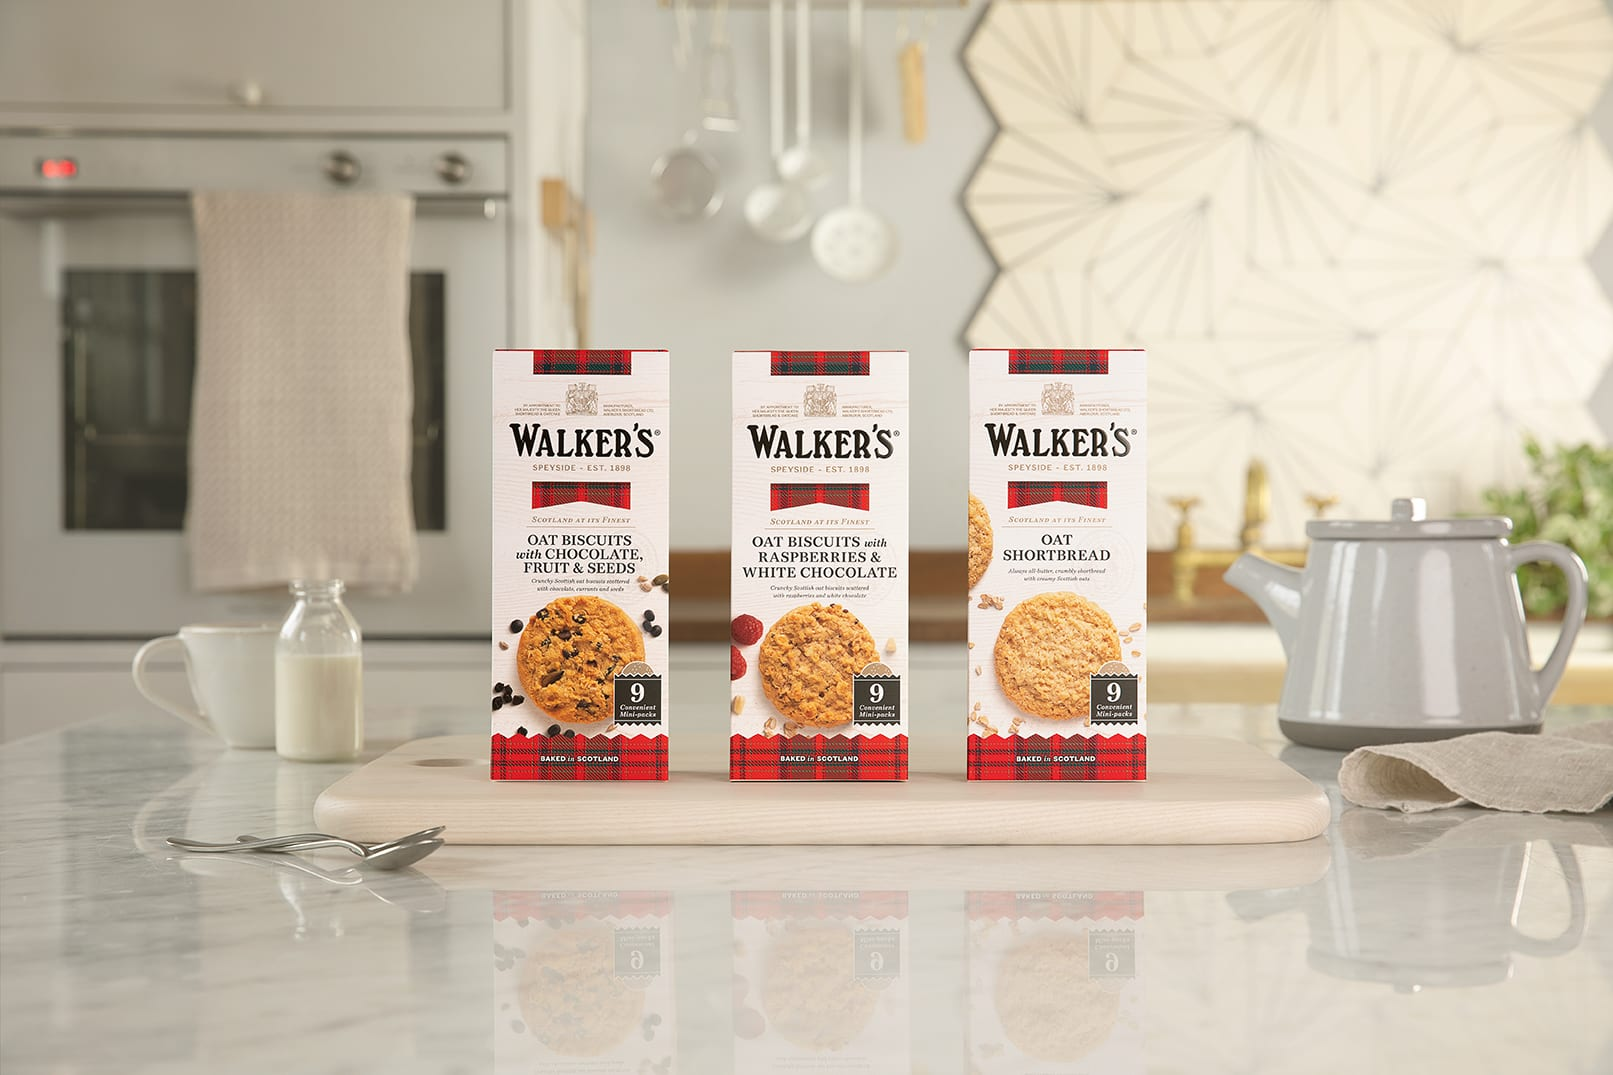 Explore innovation at Walker's and try today.